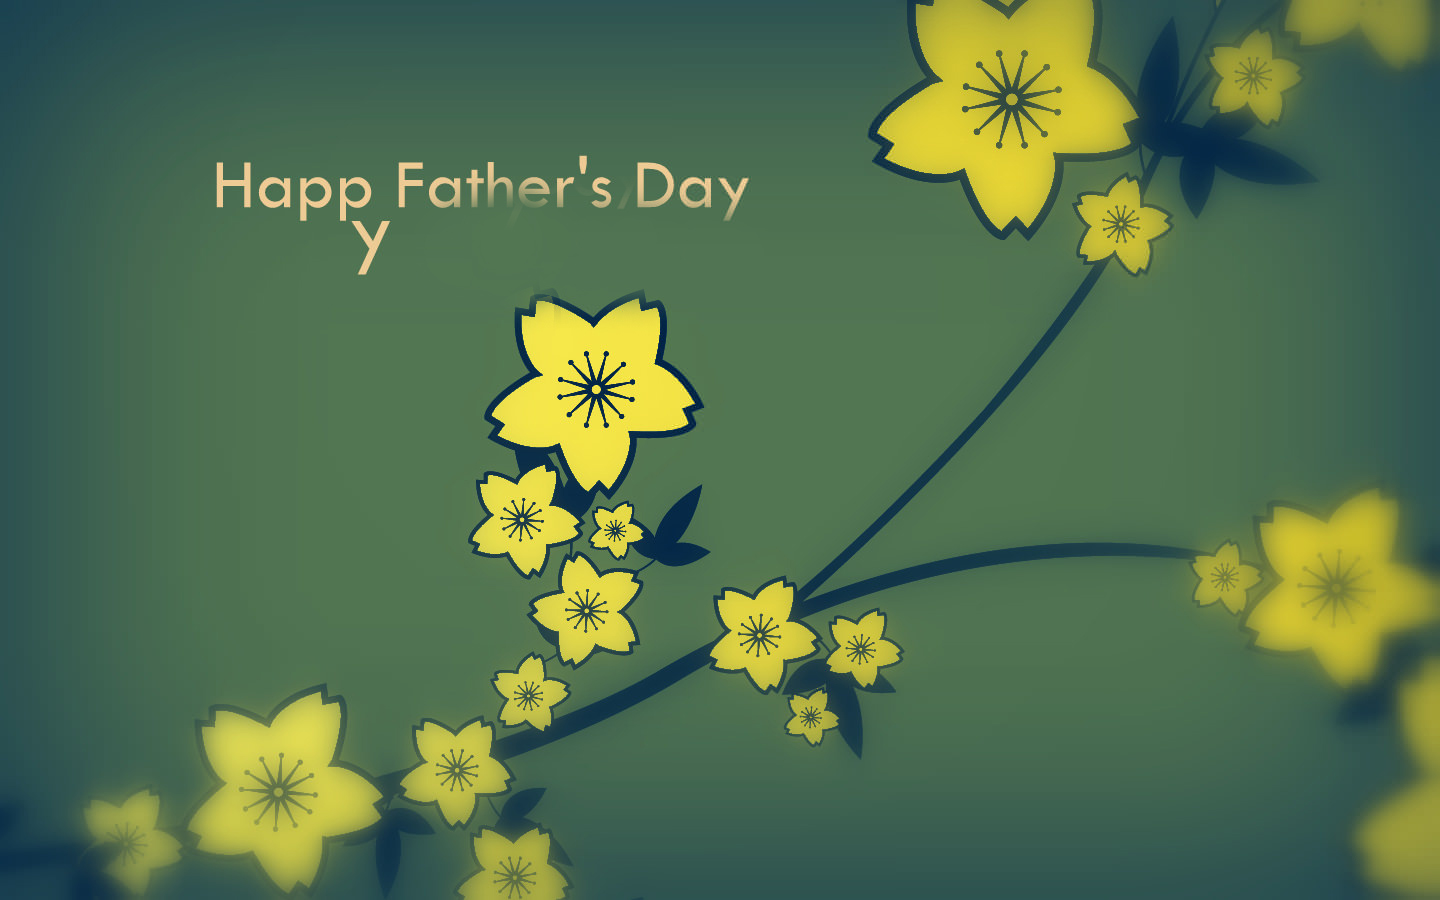 Happy Fathers Day 2018 Wallpapers Desktop Backgrounds